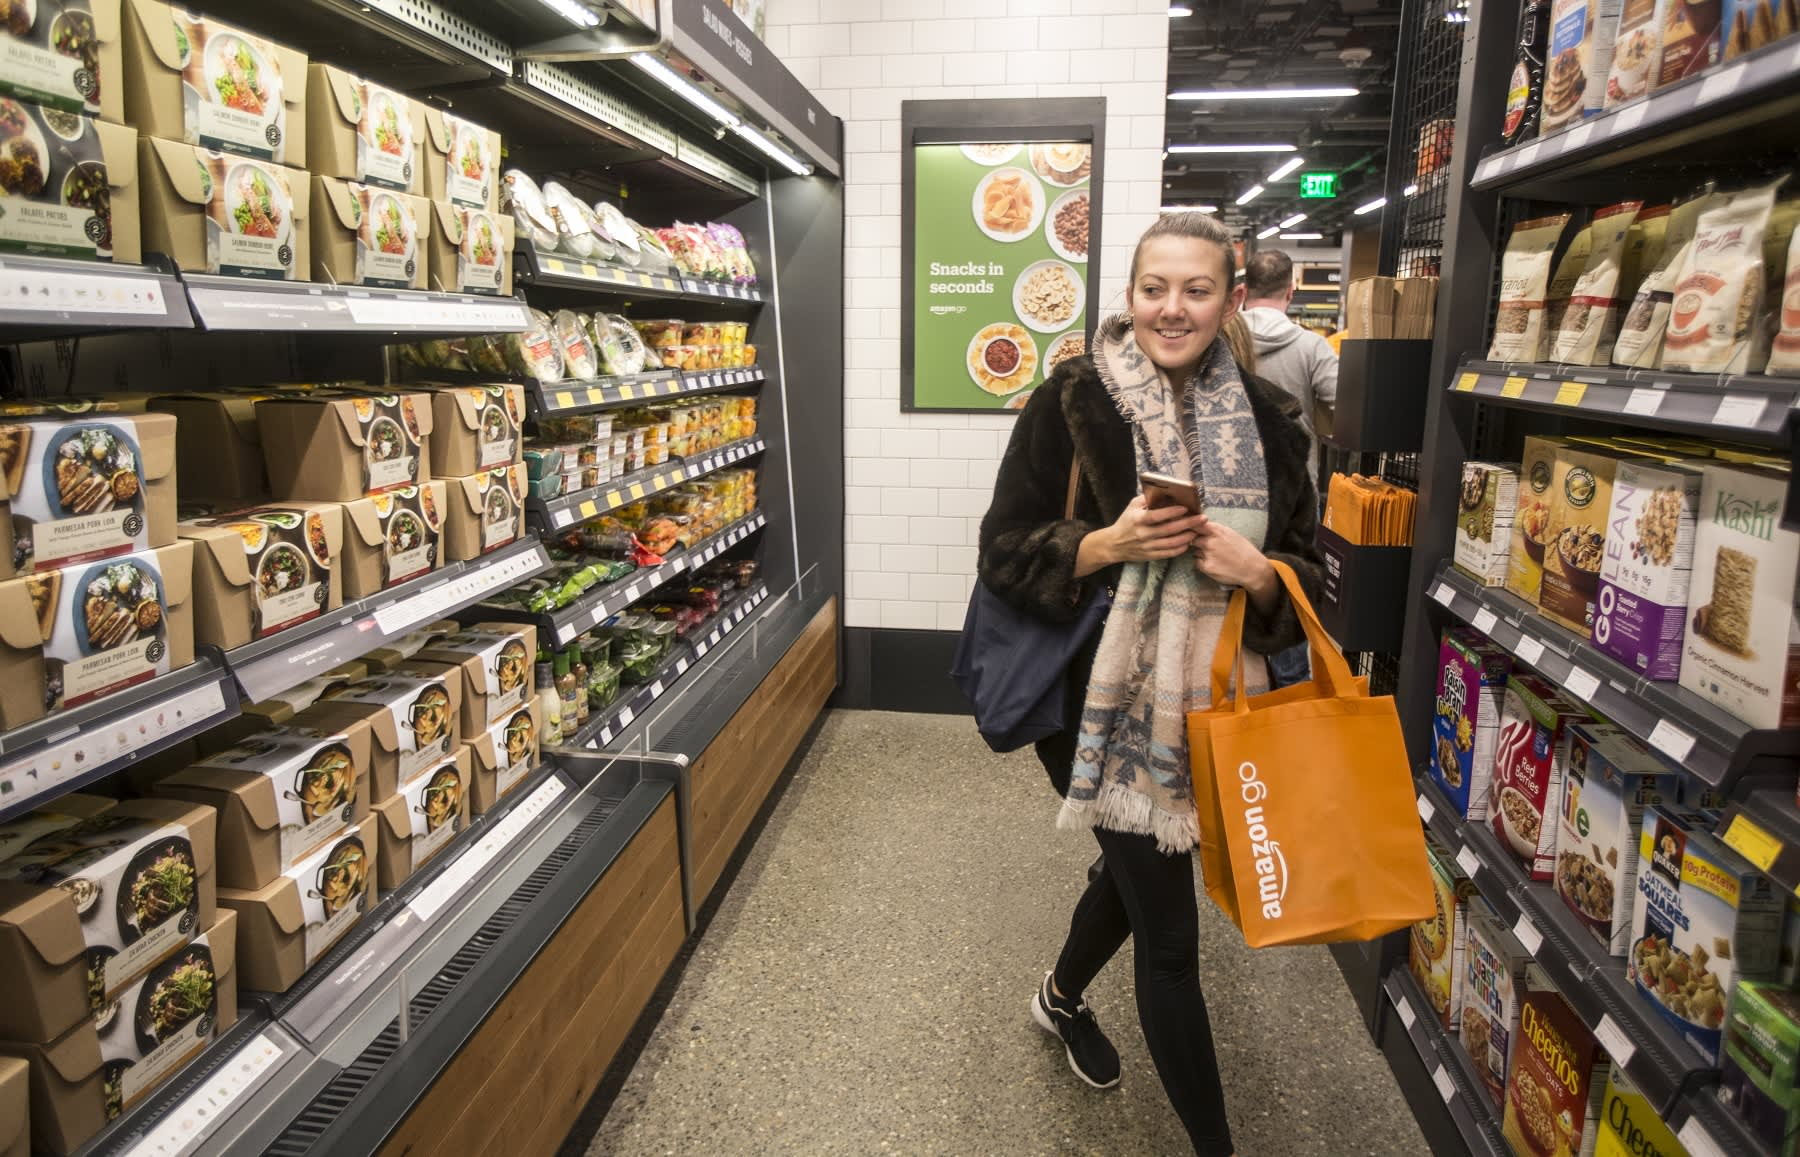 Amazon Grocery Amazon Go Grocery Store Could Actually Be Bad For Your Wallet